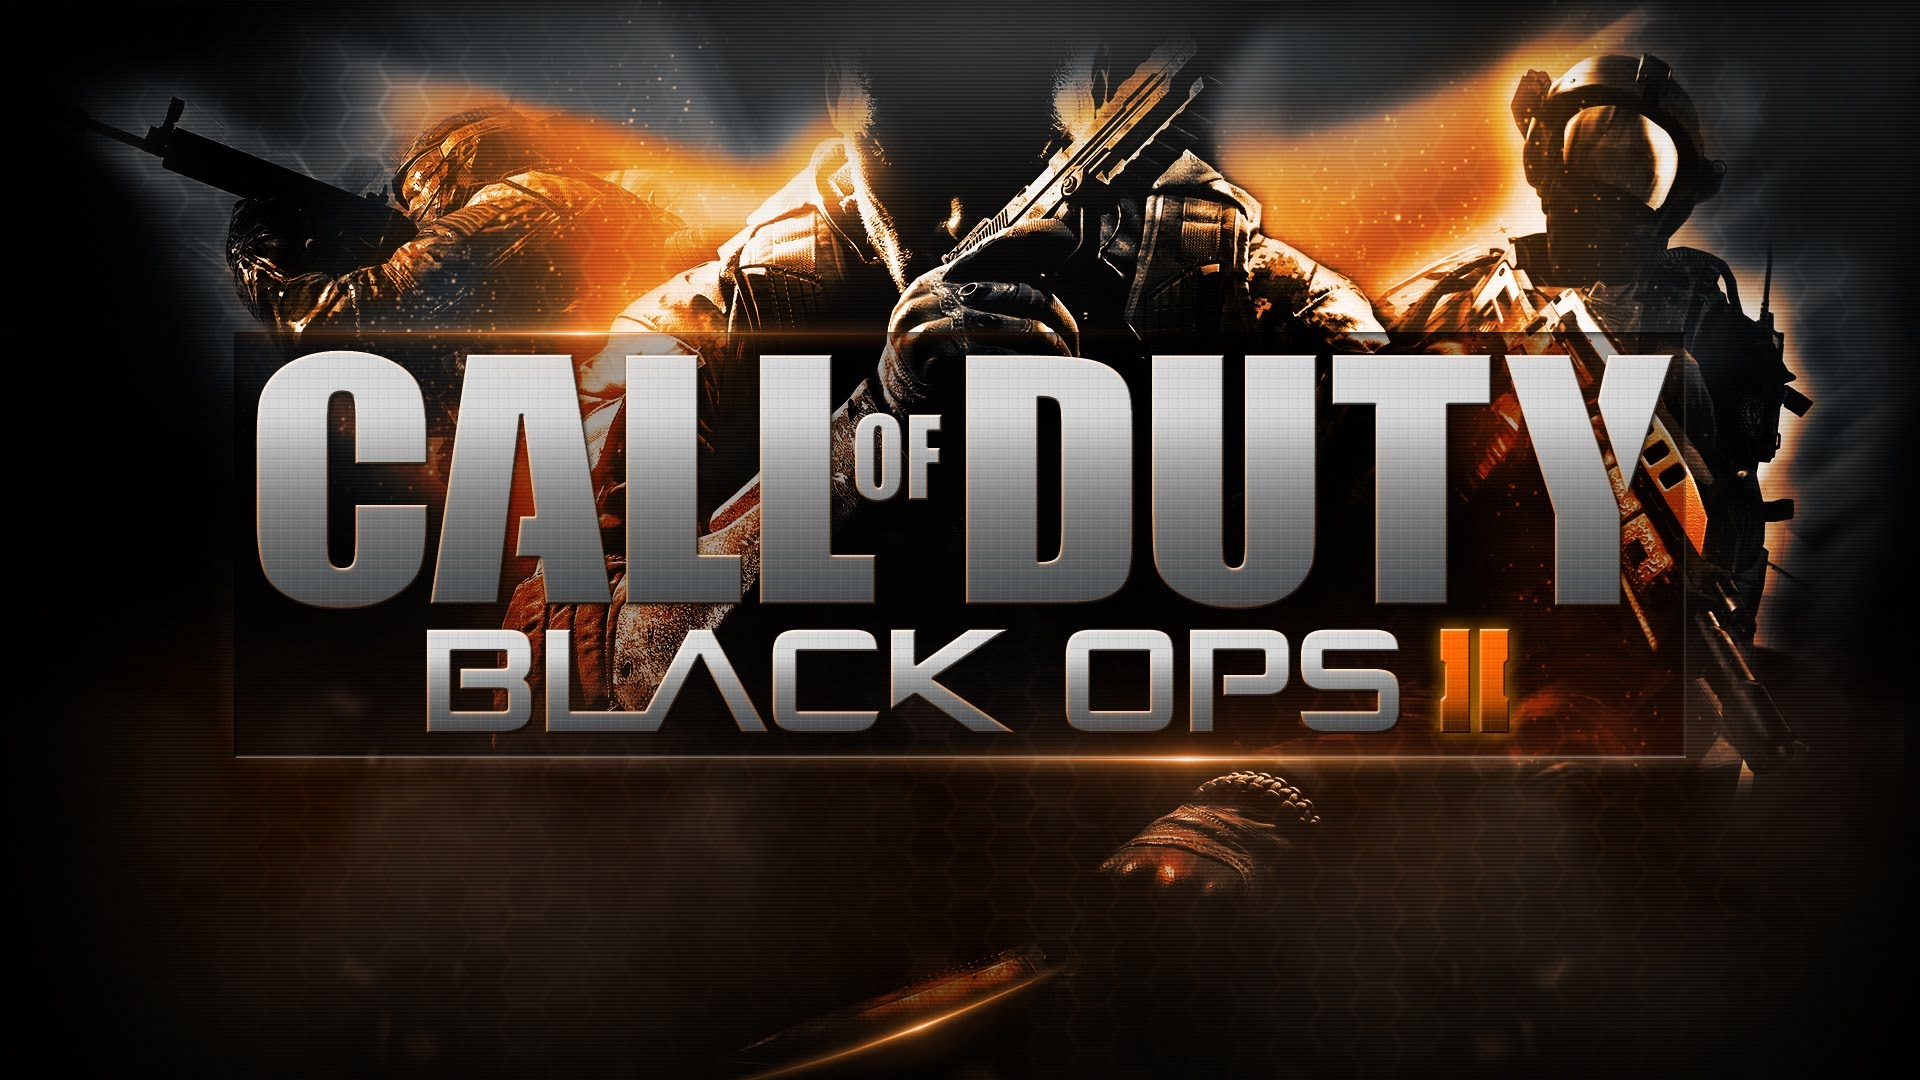 Steam Workshop :: CoD Black Ops 2 (Bo2) on cod ghosts, cod blackops 2, cod of duty fish game, new super mario bros 2 maps, cod 2 buried map, cod dlc maps, cod map layouts, black ops 3 maps, cod zombie maps, black ops zombie maps, cod camp funny, cod mw3 maps, cod mw2 maps, mortal kombat 2 maps, cod world at war maps, left 4 dead 2 maps, cod 2 tranzit map, dead island 2 maps, cod bo 2 multiplayer, cod uprising,